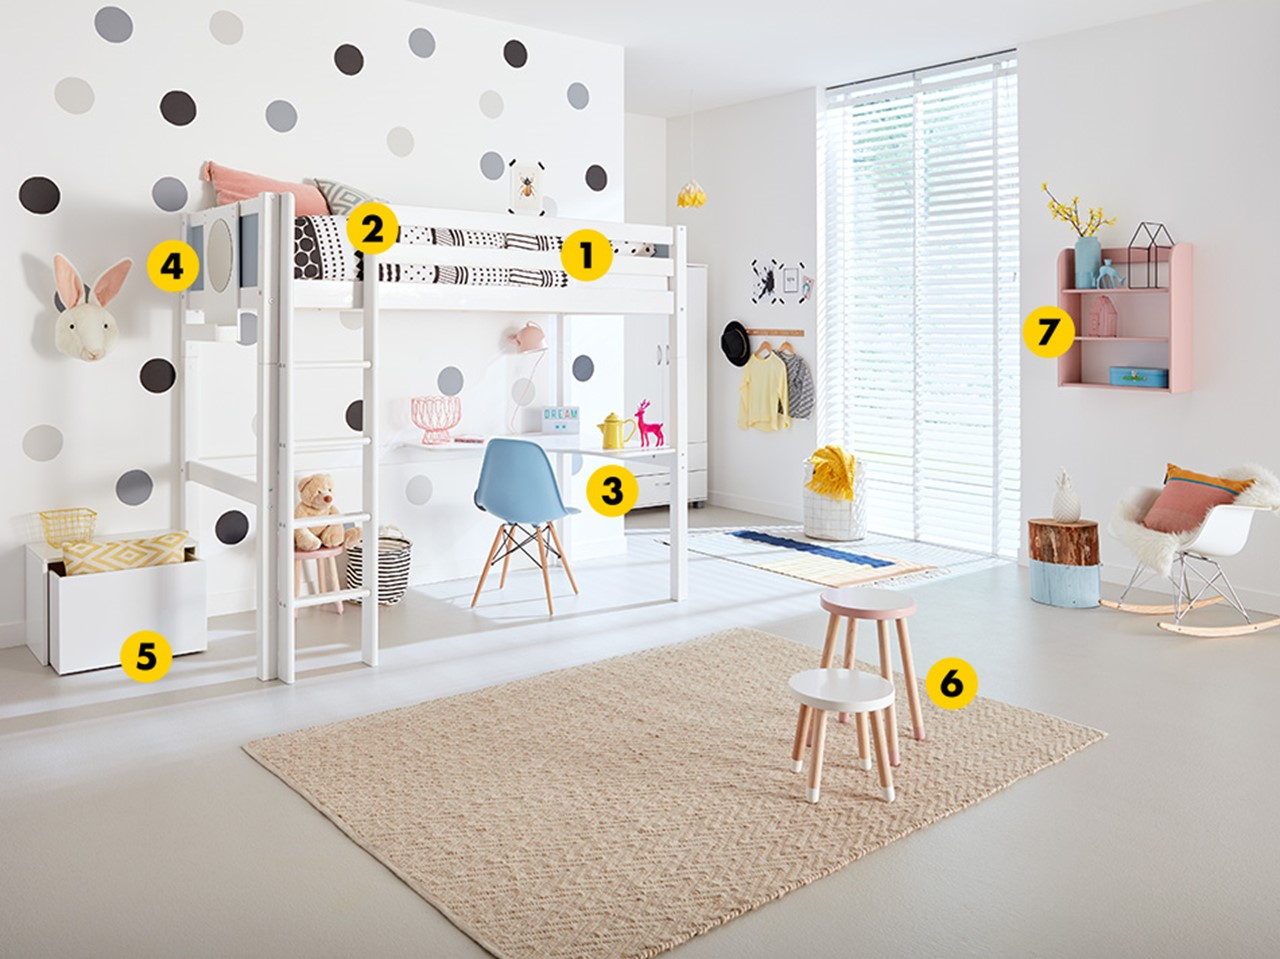 Shop the look: maak je kinderkamer compleet